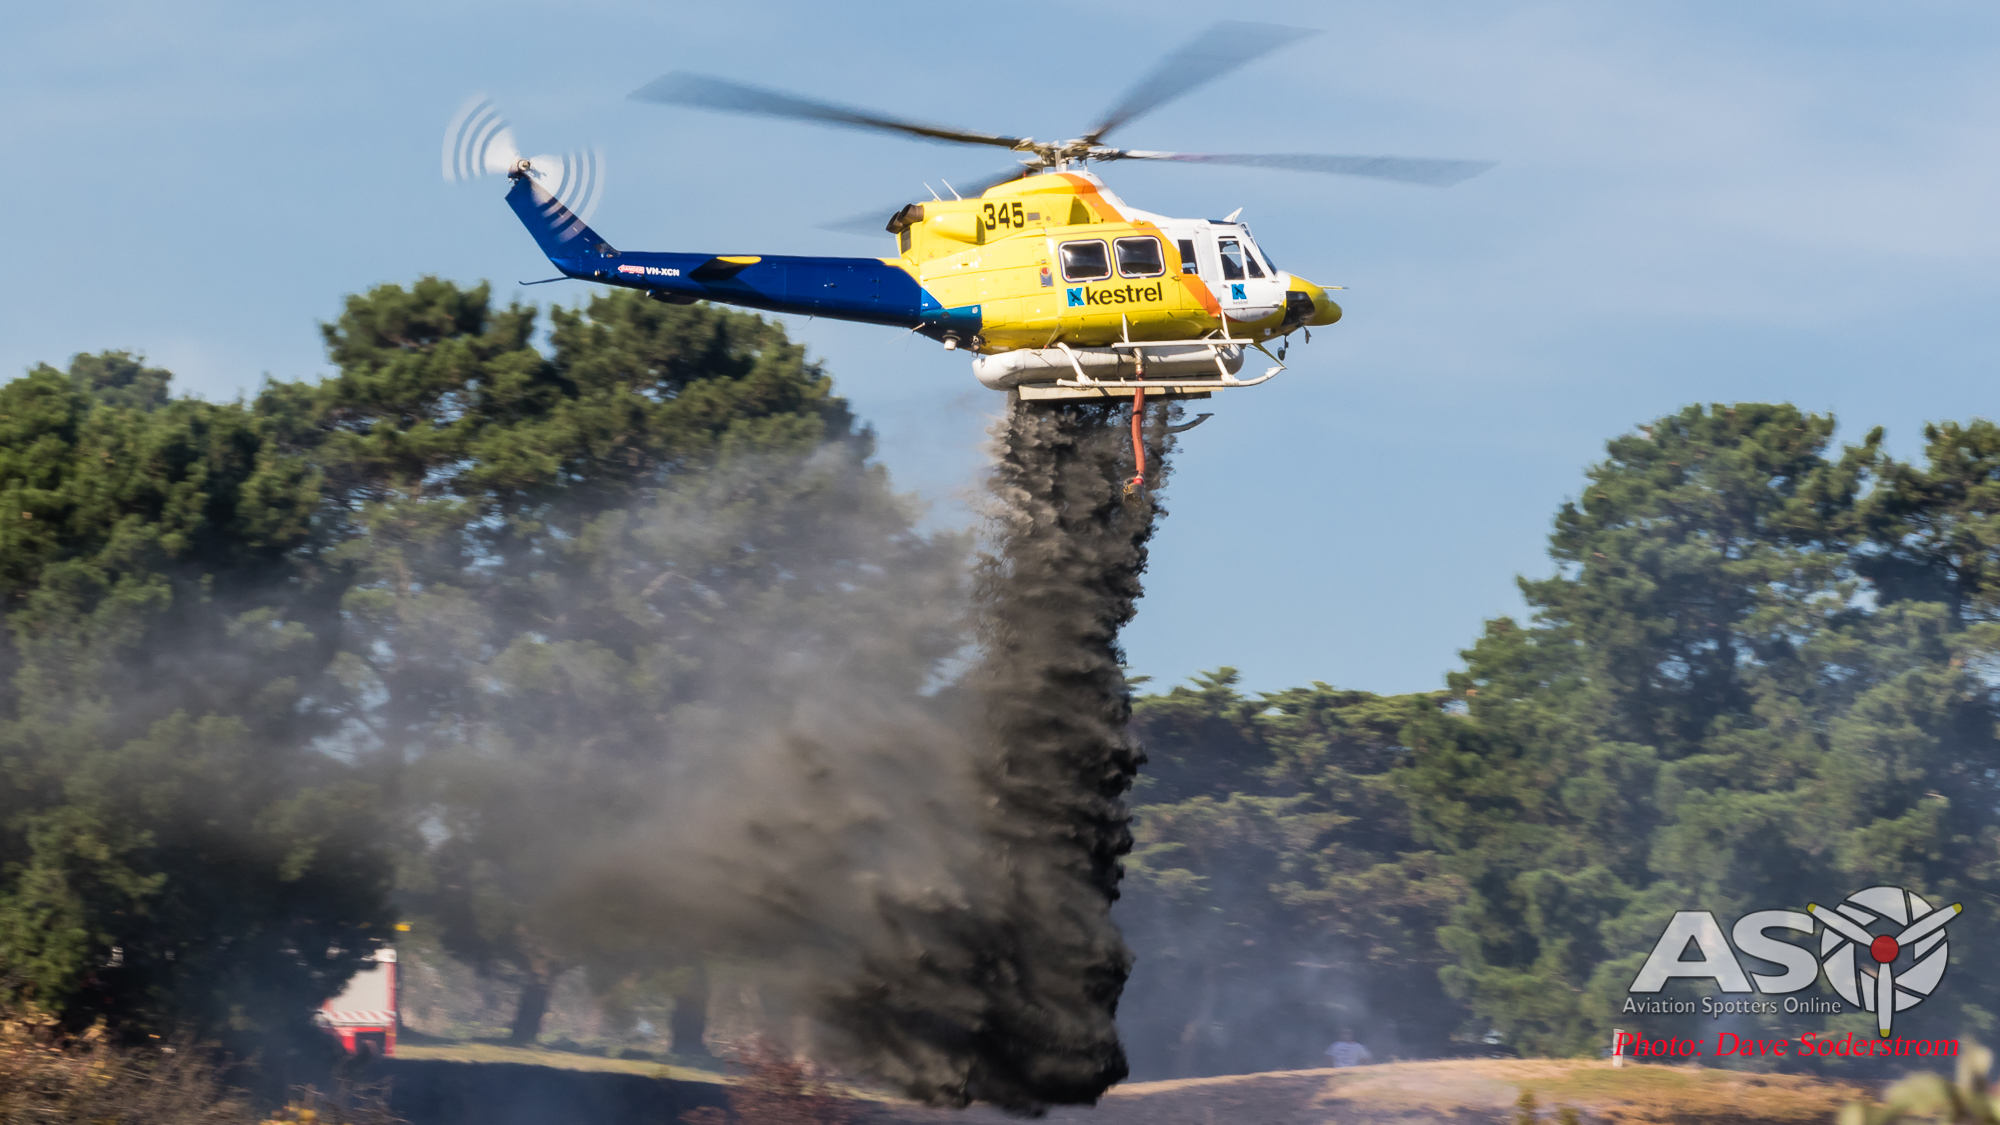 Australian Fire Season 2017/18 Overview